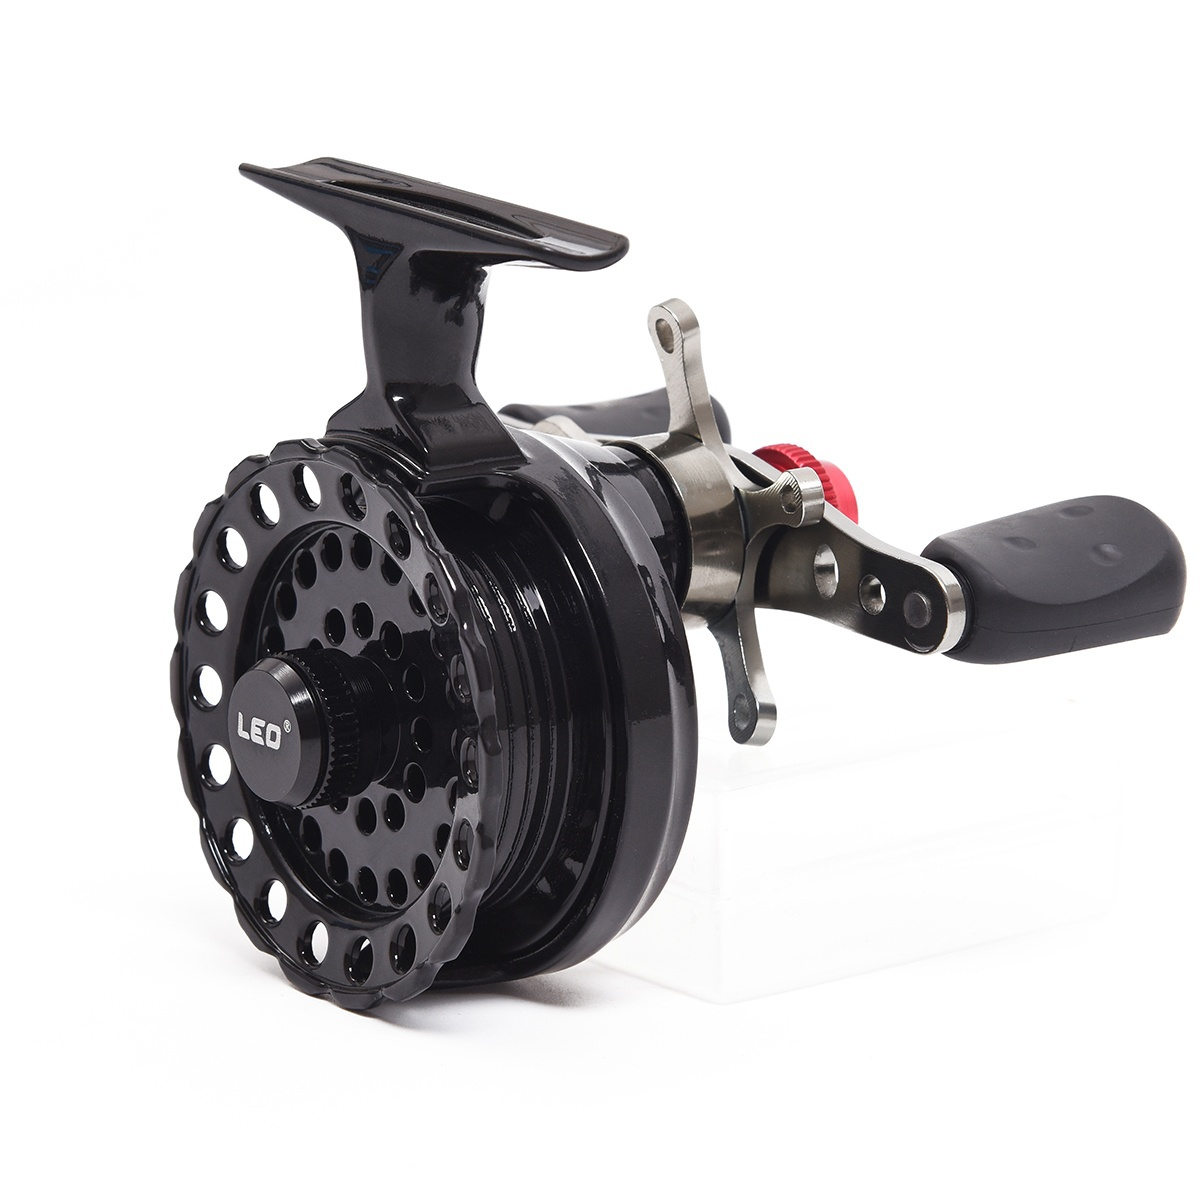 MMFC-LEO DWS60 4 + 1BB 2.6:1 65MM Fly Fishing Reel Wheel with High Foot Fishing Reels Fishing Reel Wheels